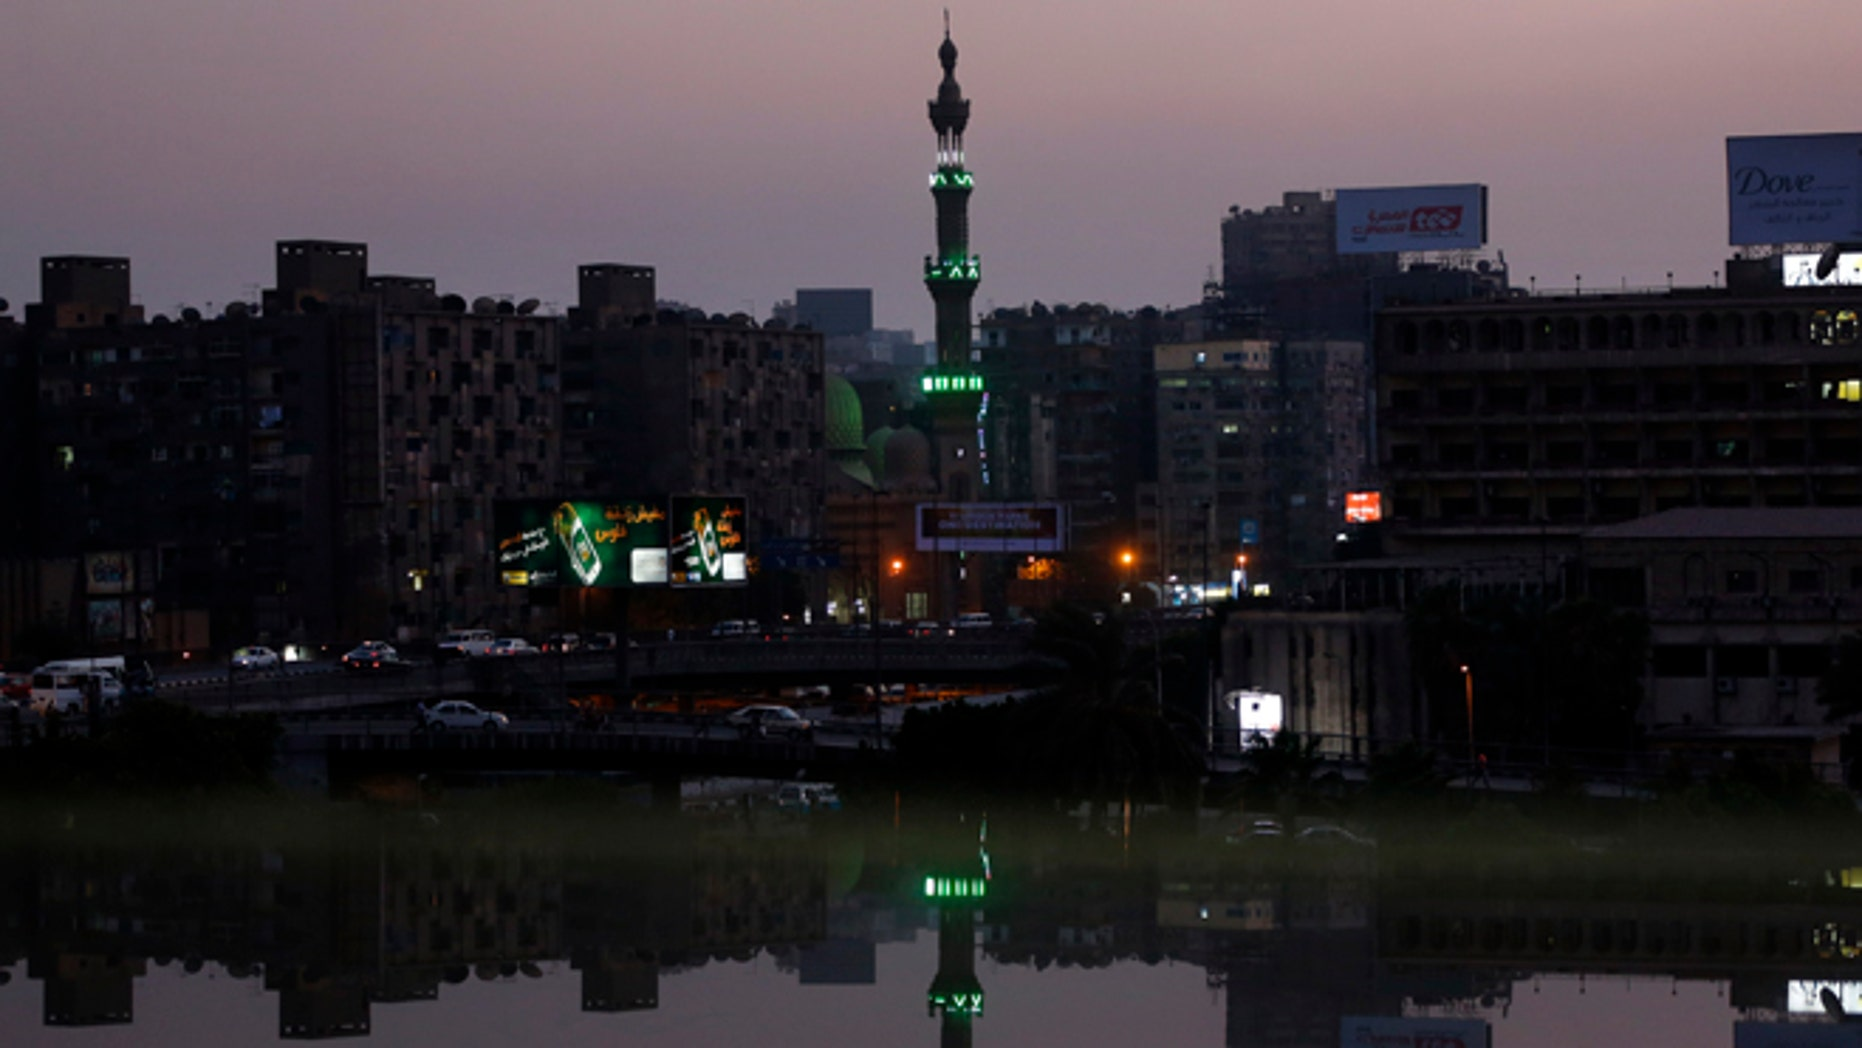 Aug. 25, 2013: A mosque's minaret near the river Nile river is reflected on an open office window in Cairo, Egypt. (AP/Lefteris Pitarakis)